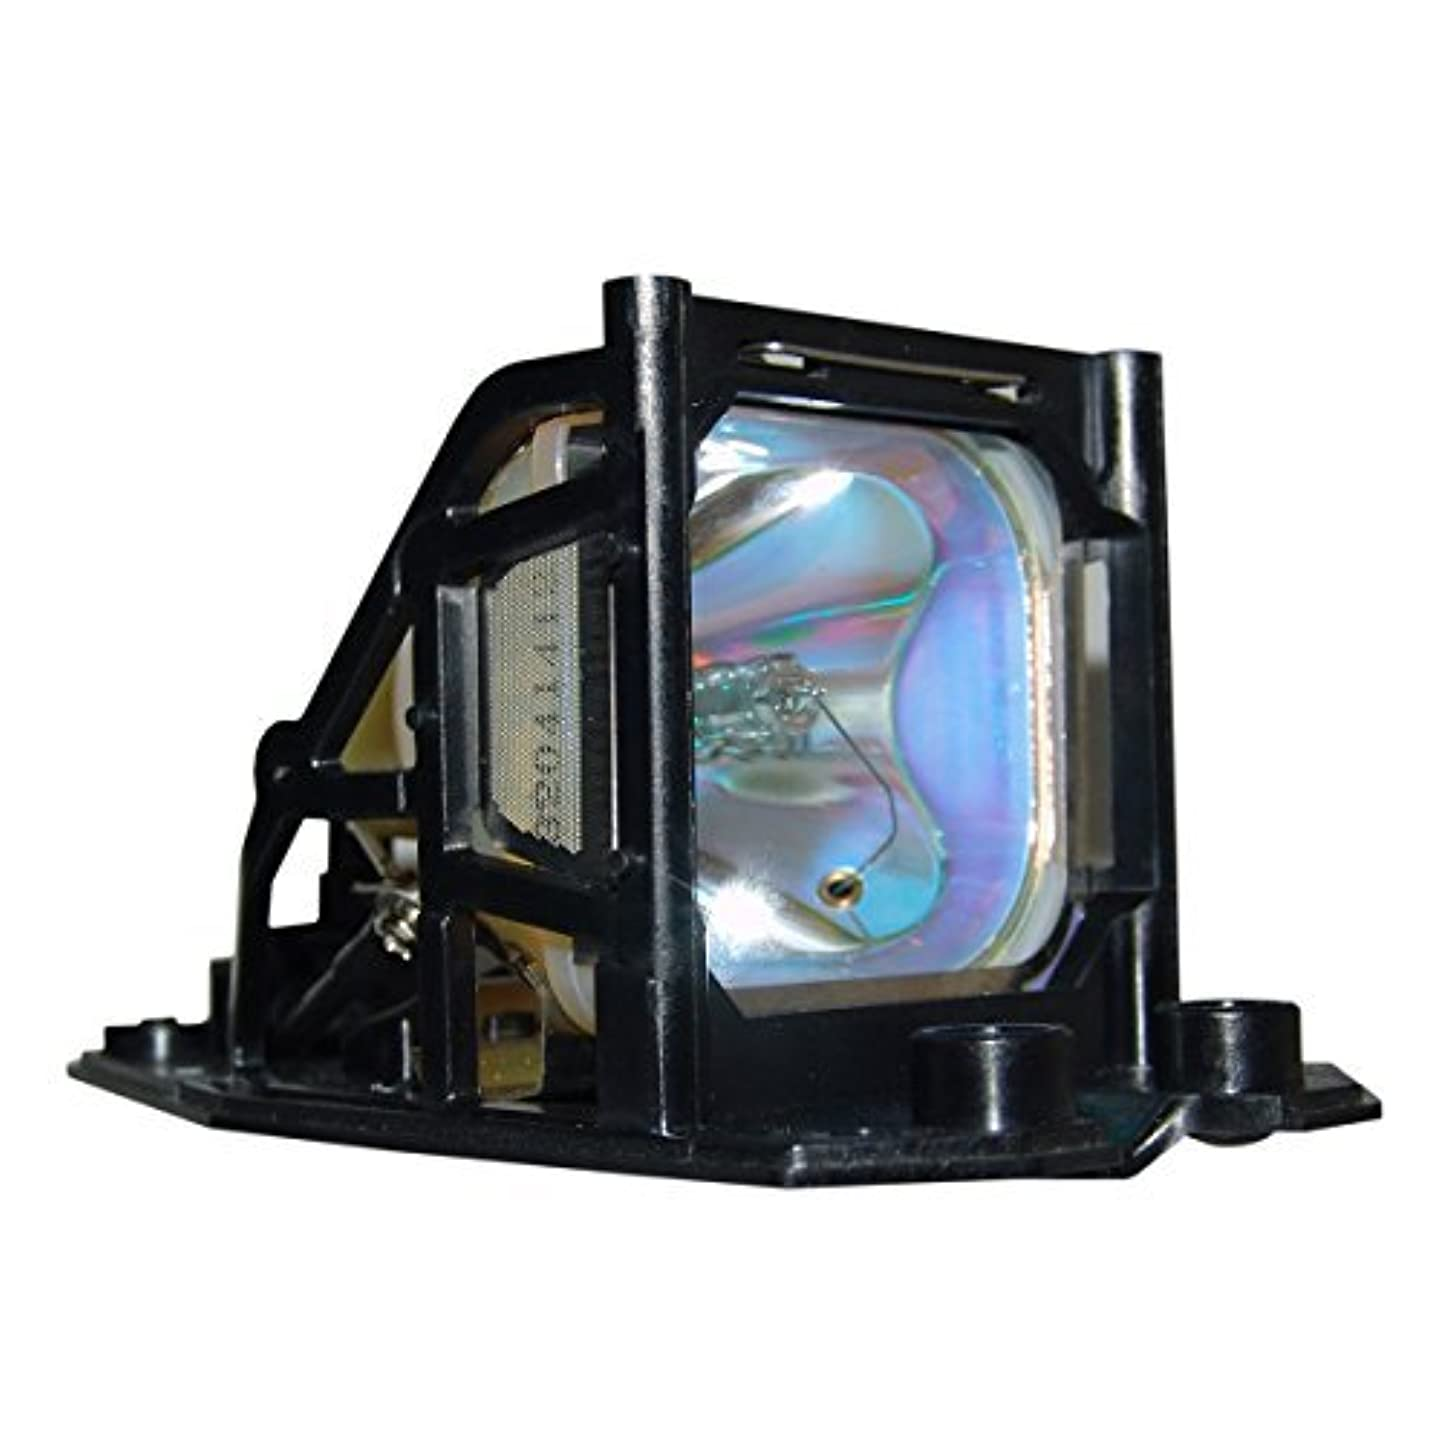 クモ同志せがむSpArc Platinum Triumph-Adler C40 Projector Replacement Lamp with Housing [並行輸入品]